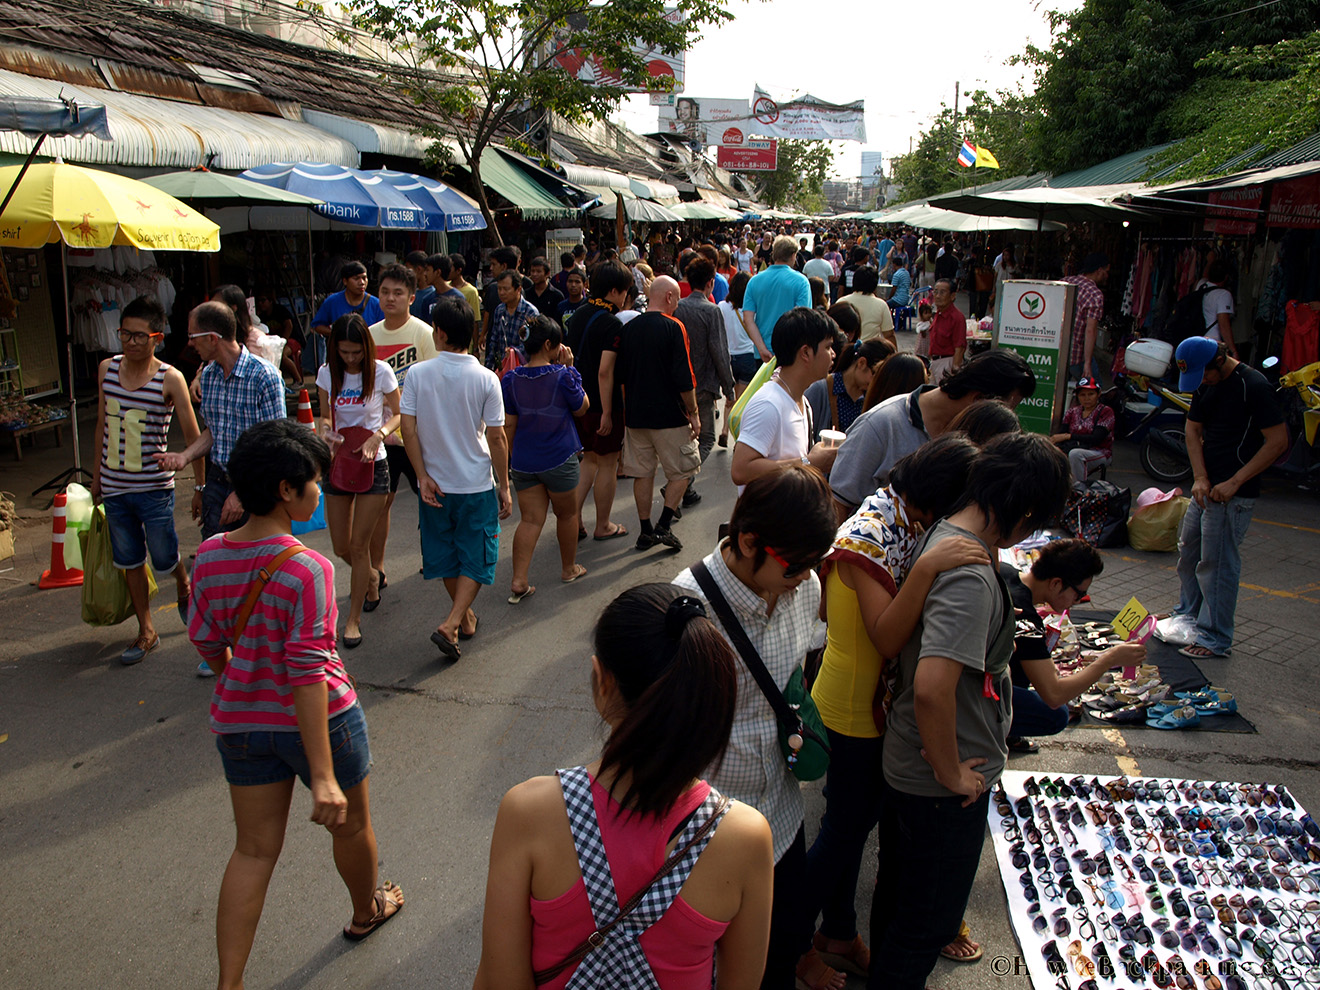 翟道翟市場 Chatuchak Weekend Market